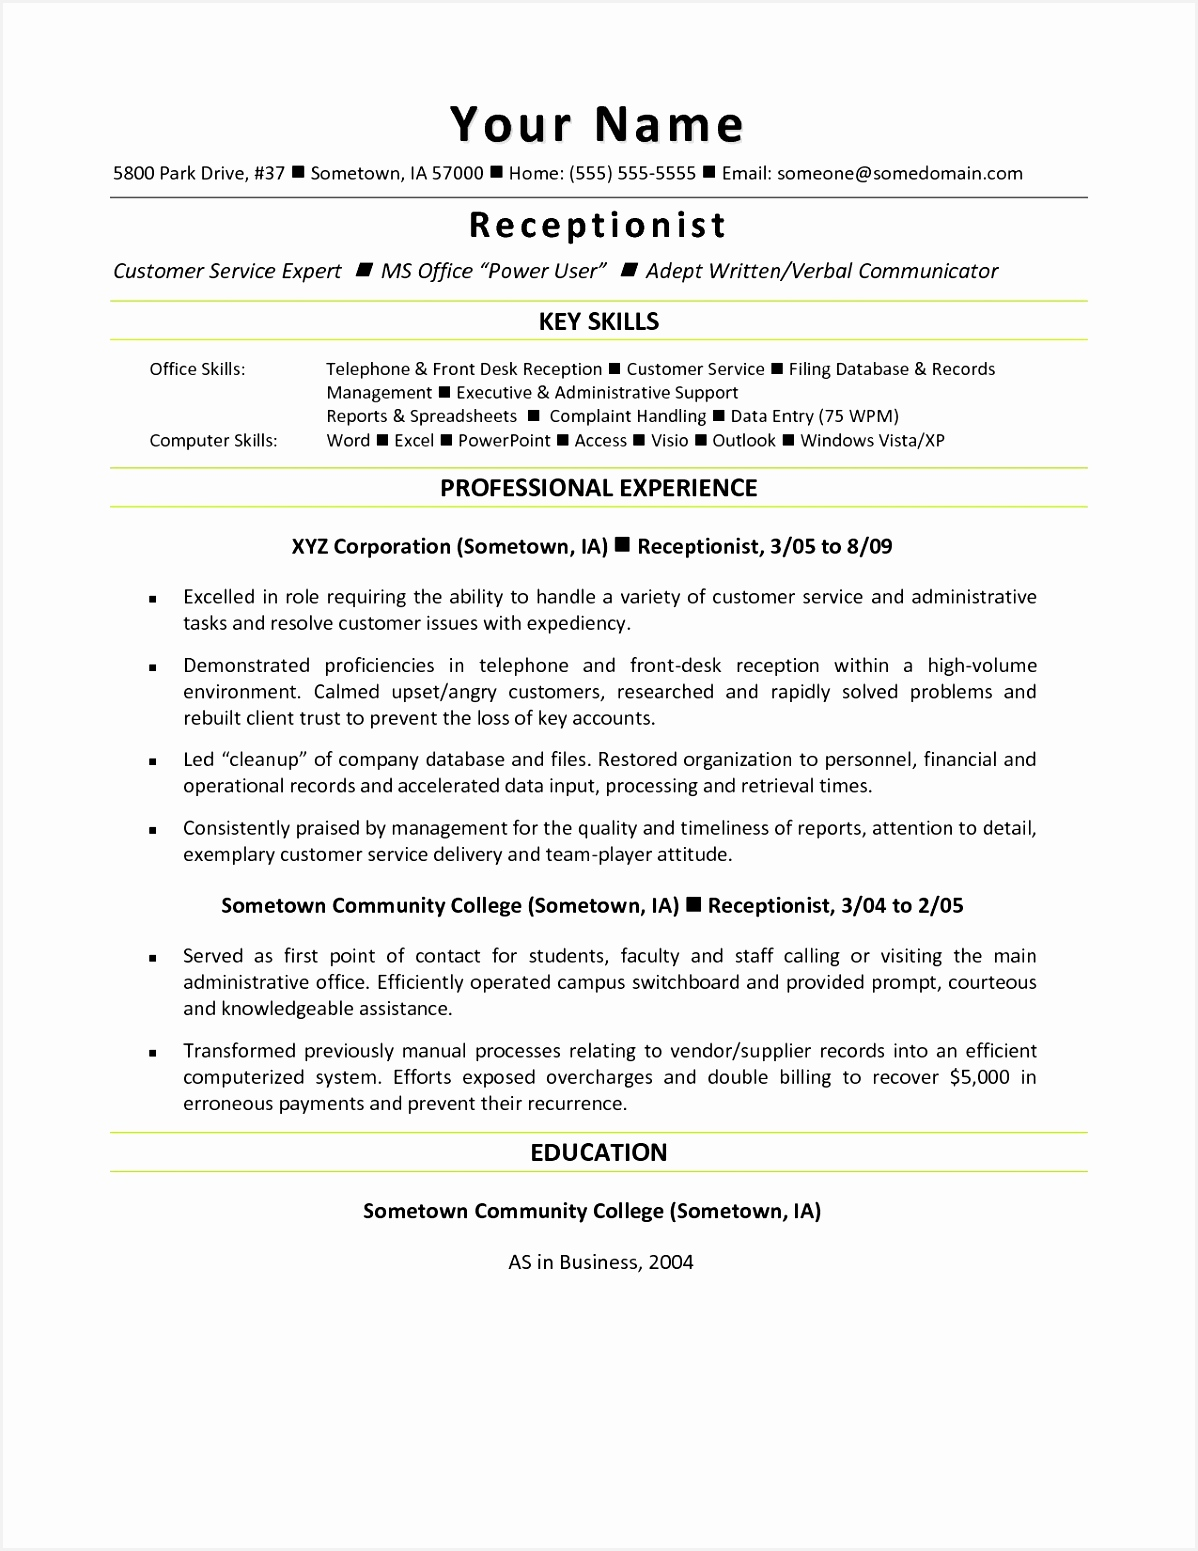 Manager assistant Sample Resume Sxyrt Awesome Sample Key Account Manager Resume Templates Valid Nurse assistant Of Manager assistant Sample Resume E2elo Luxury assistant Manager Job Description Resume Examples 29 Bank Manager